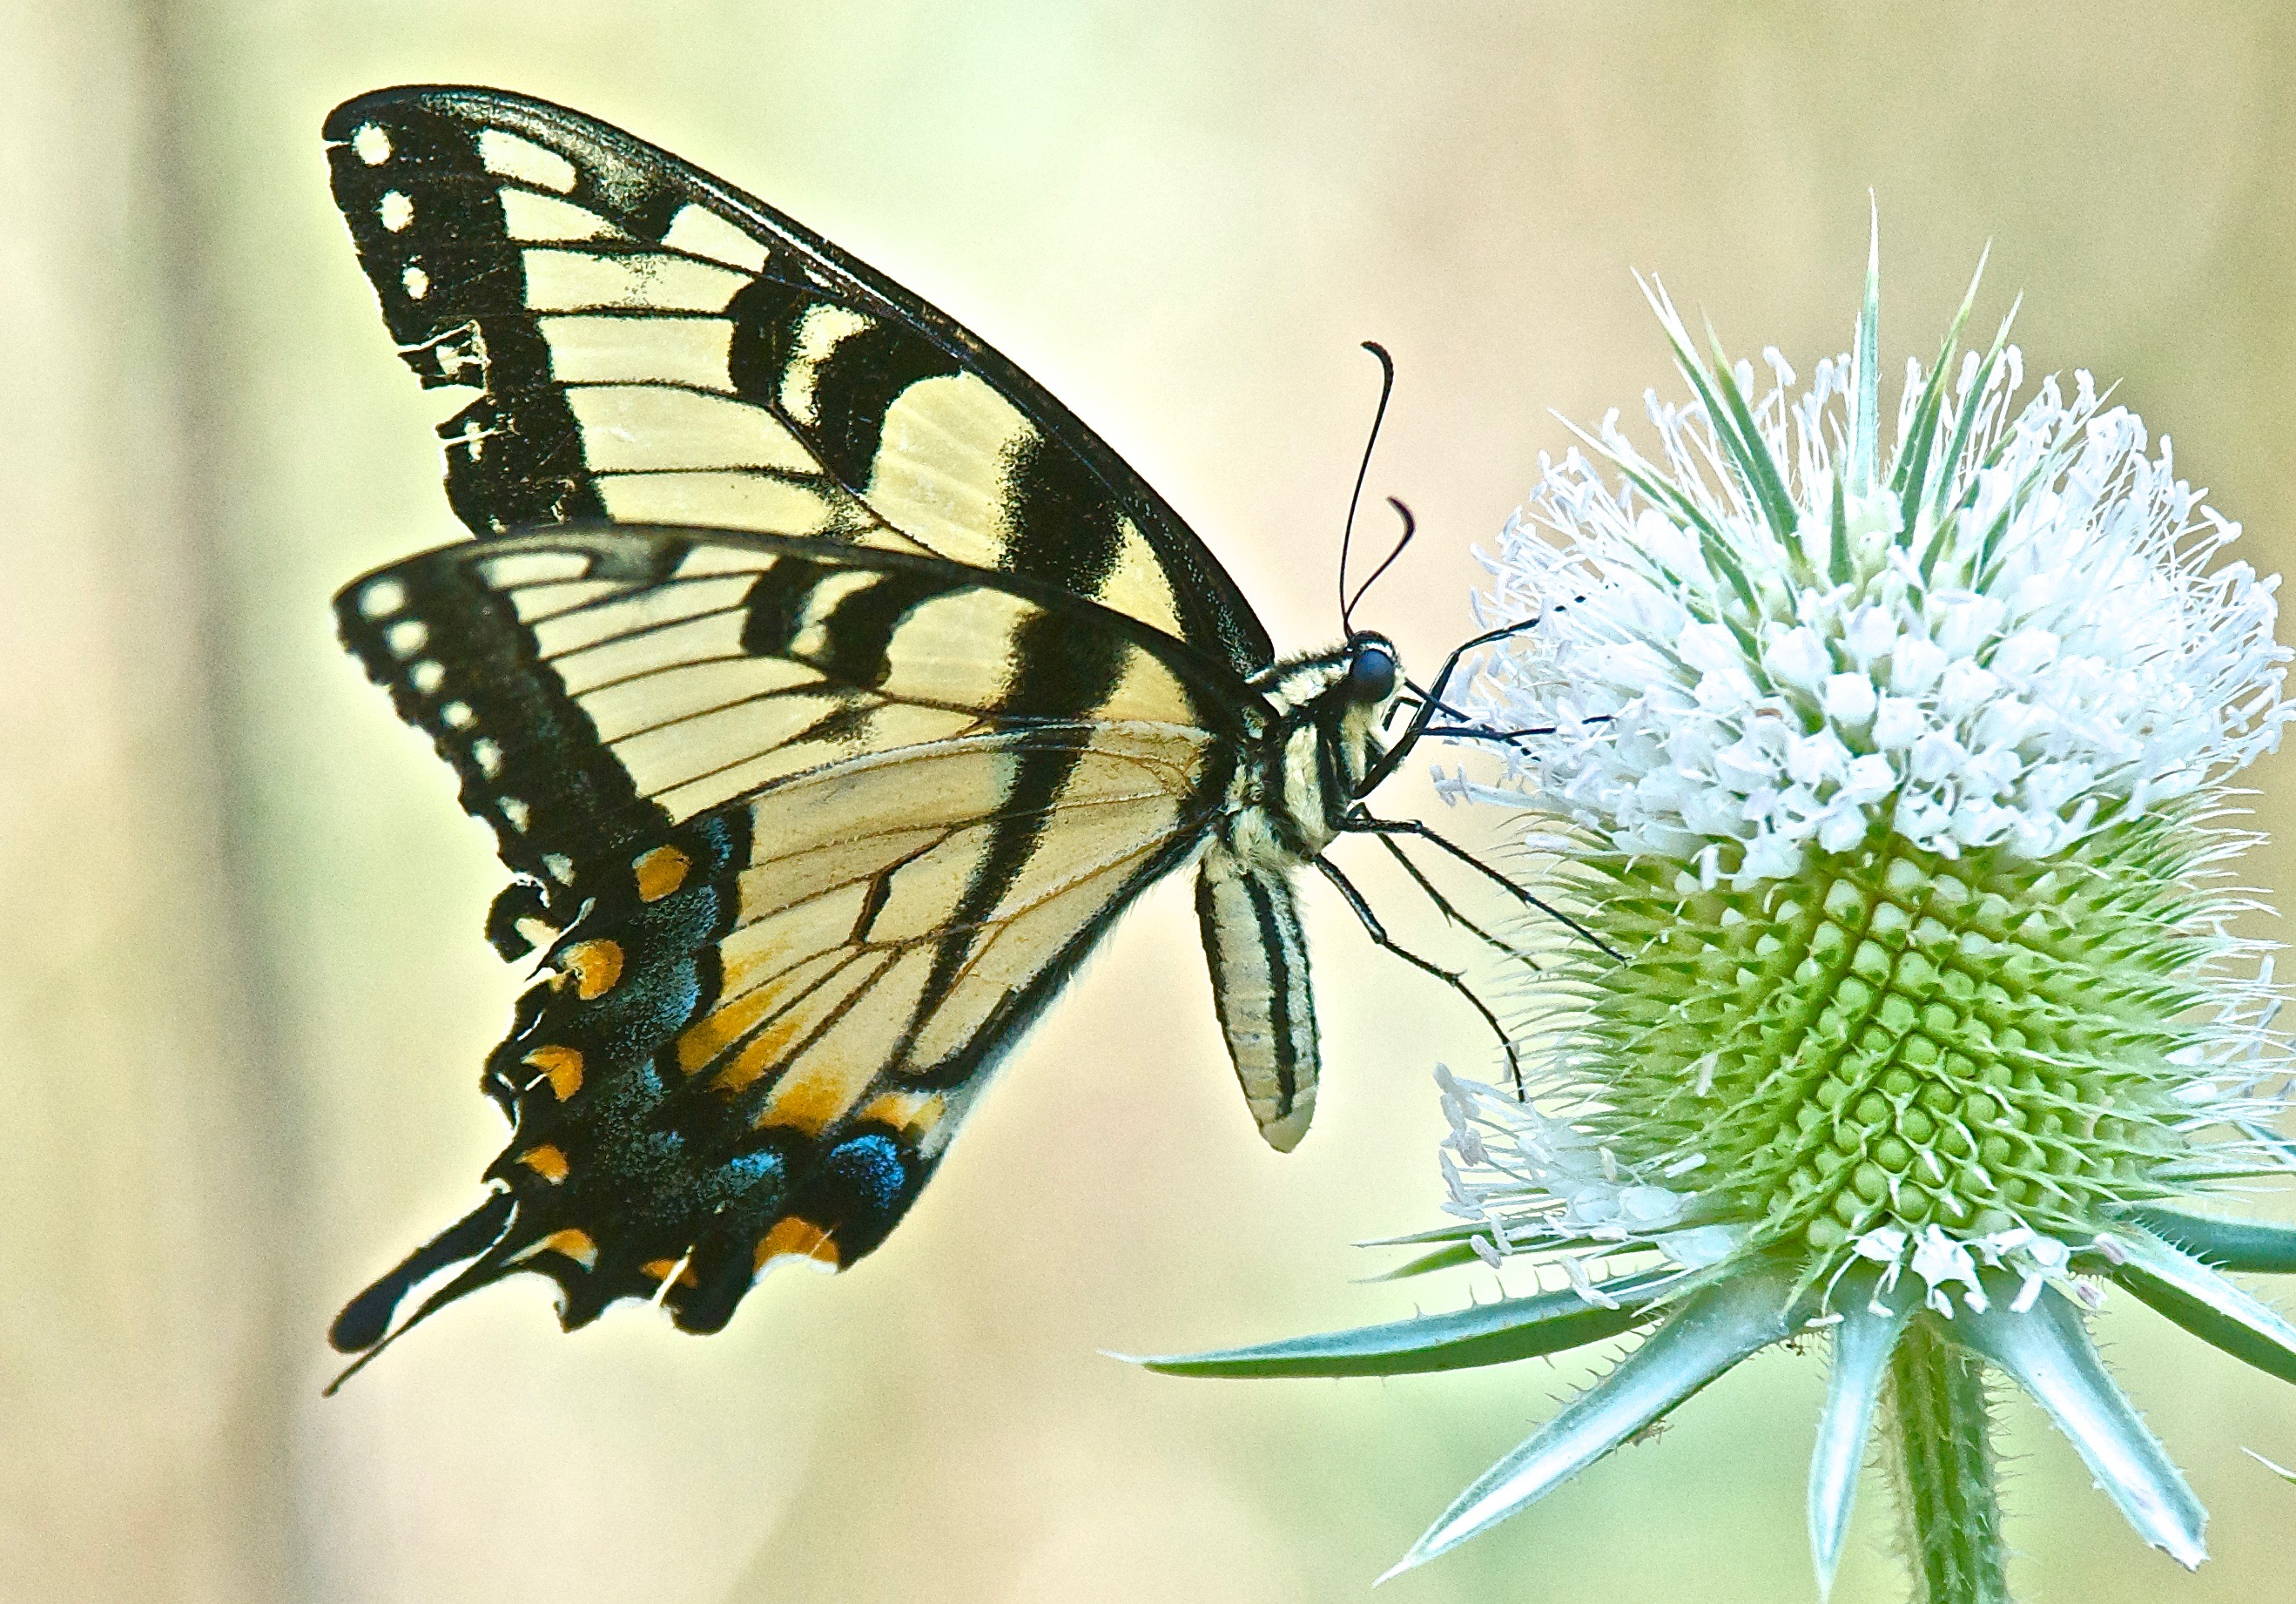 Western Tiger Swallowtail Butterfly (Papilio Rutulus) on Teasel (Dipsacus fullonum)